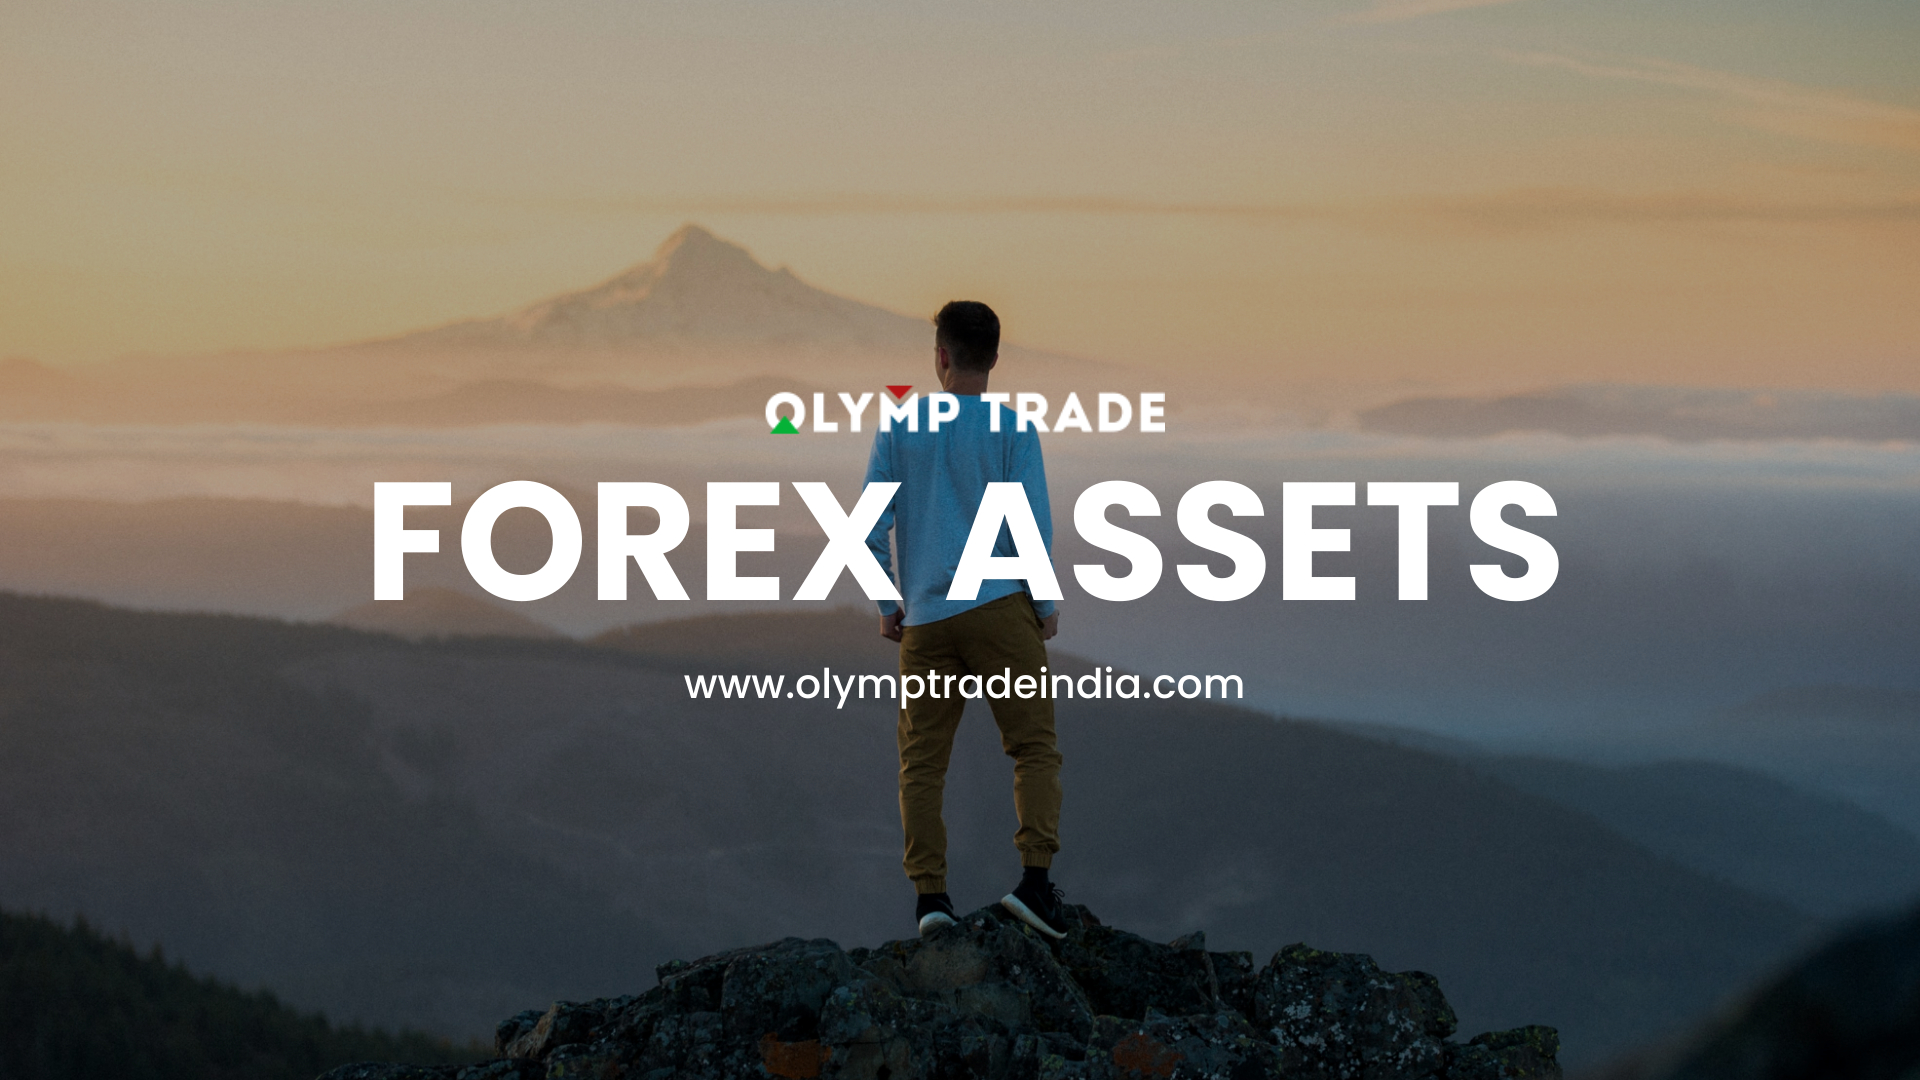 Olymp Trade India - Assets for trading Forex